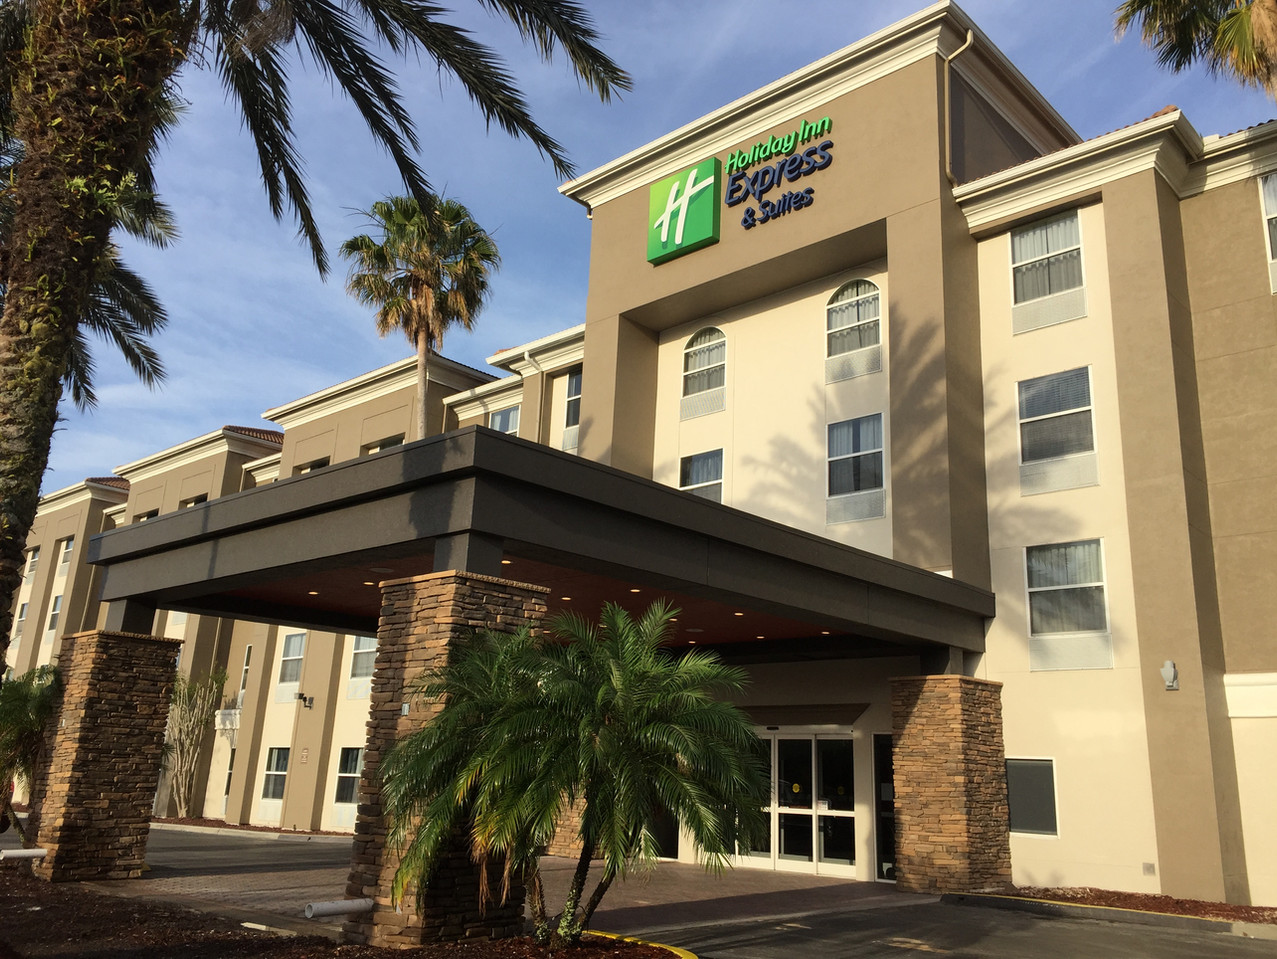 Holiday Inn Exterior Hotel Renovation After